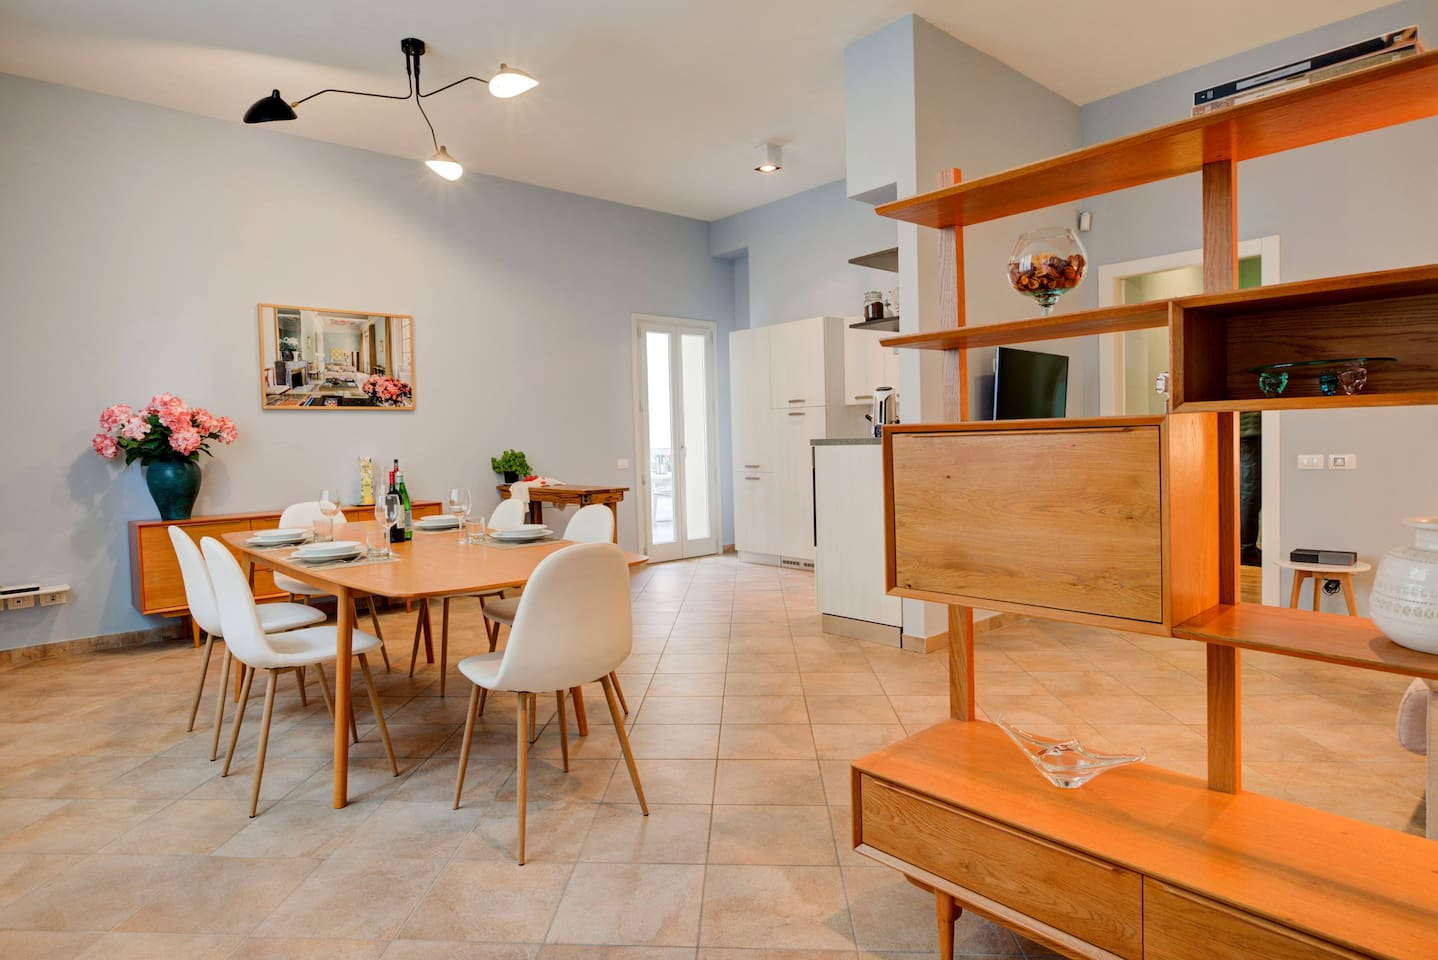 Our spacious and fashion dining area connected with your private patio, kitchen and living area